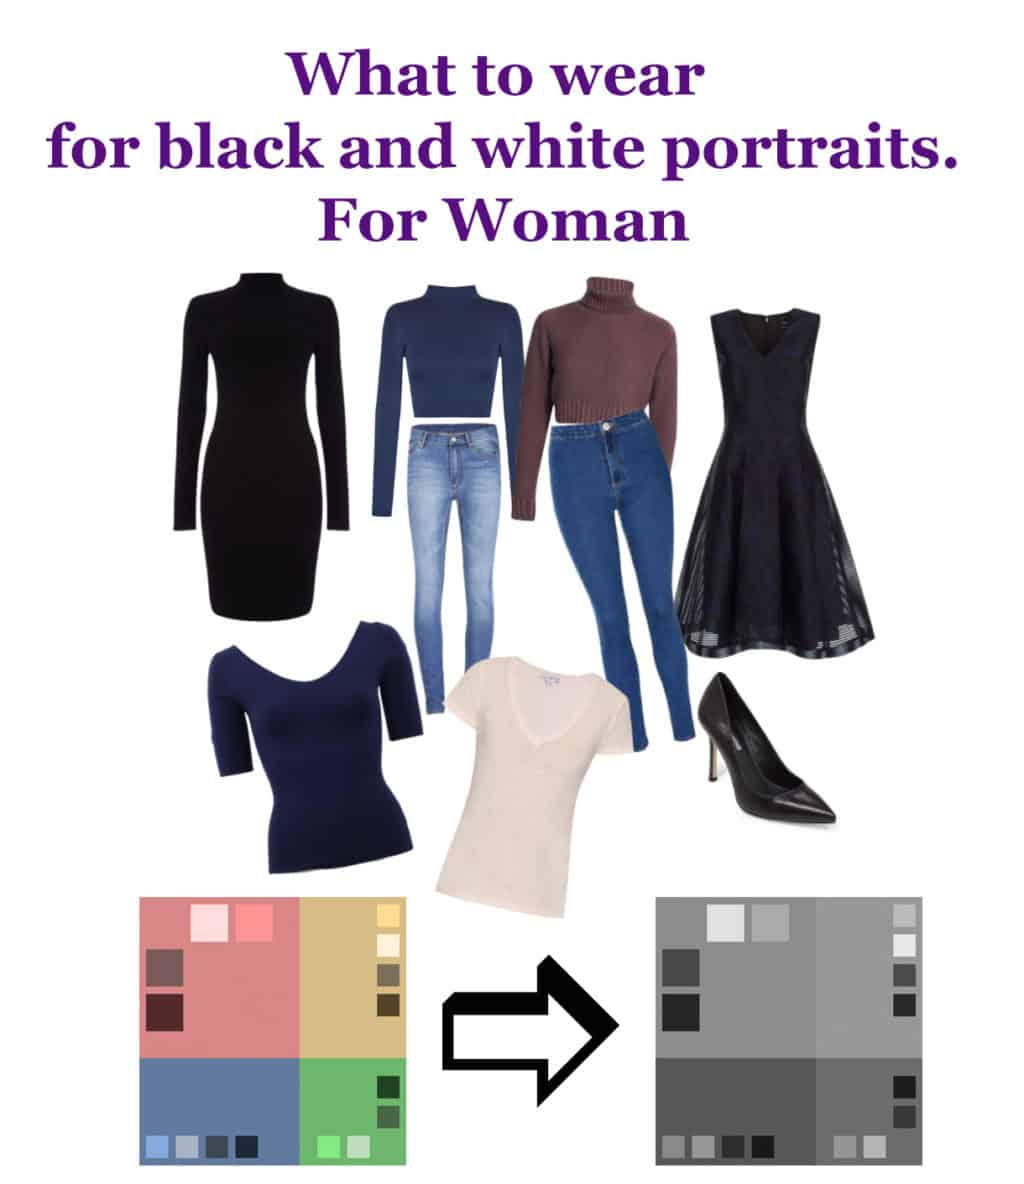 What to wear for black and white portraits woman